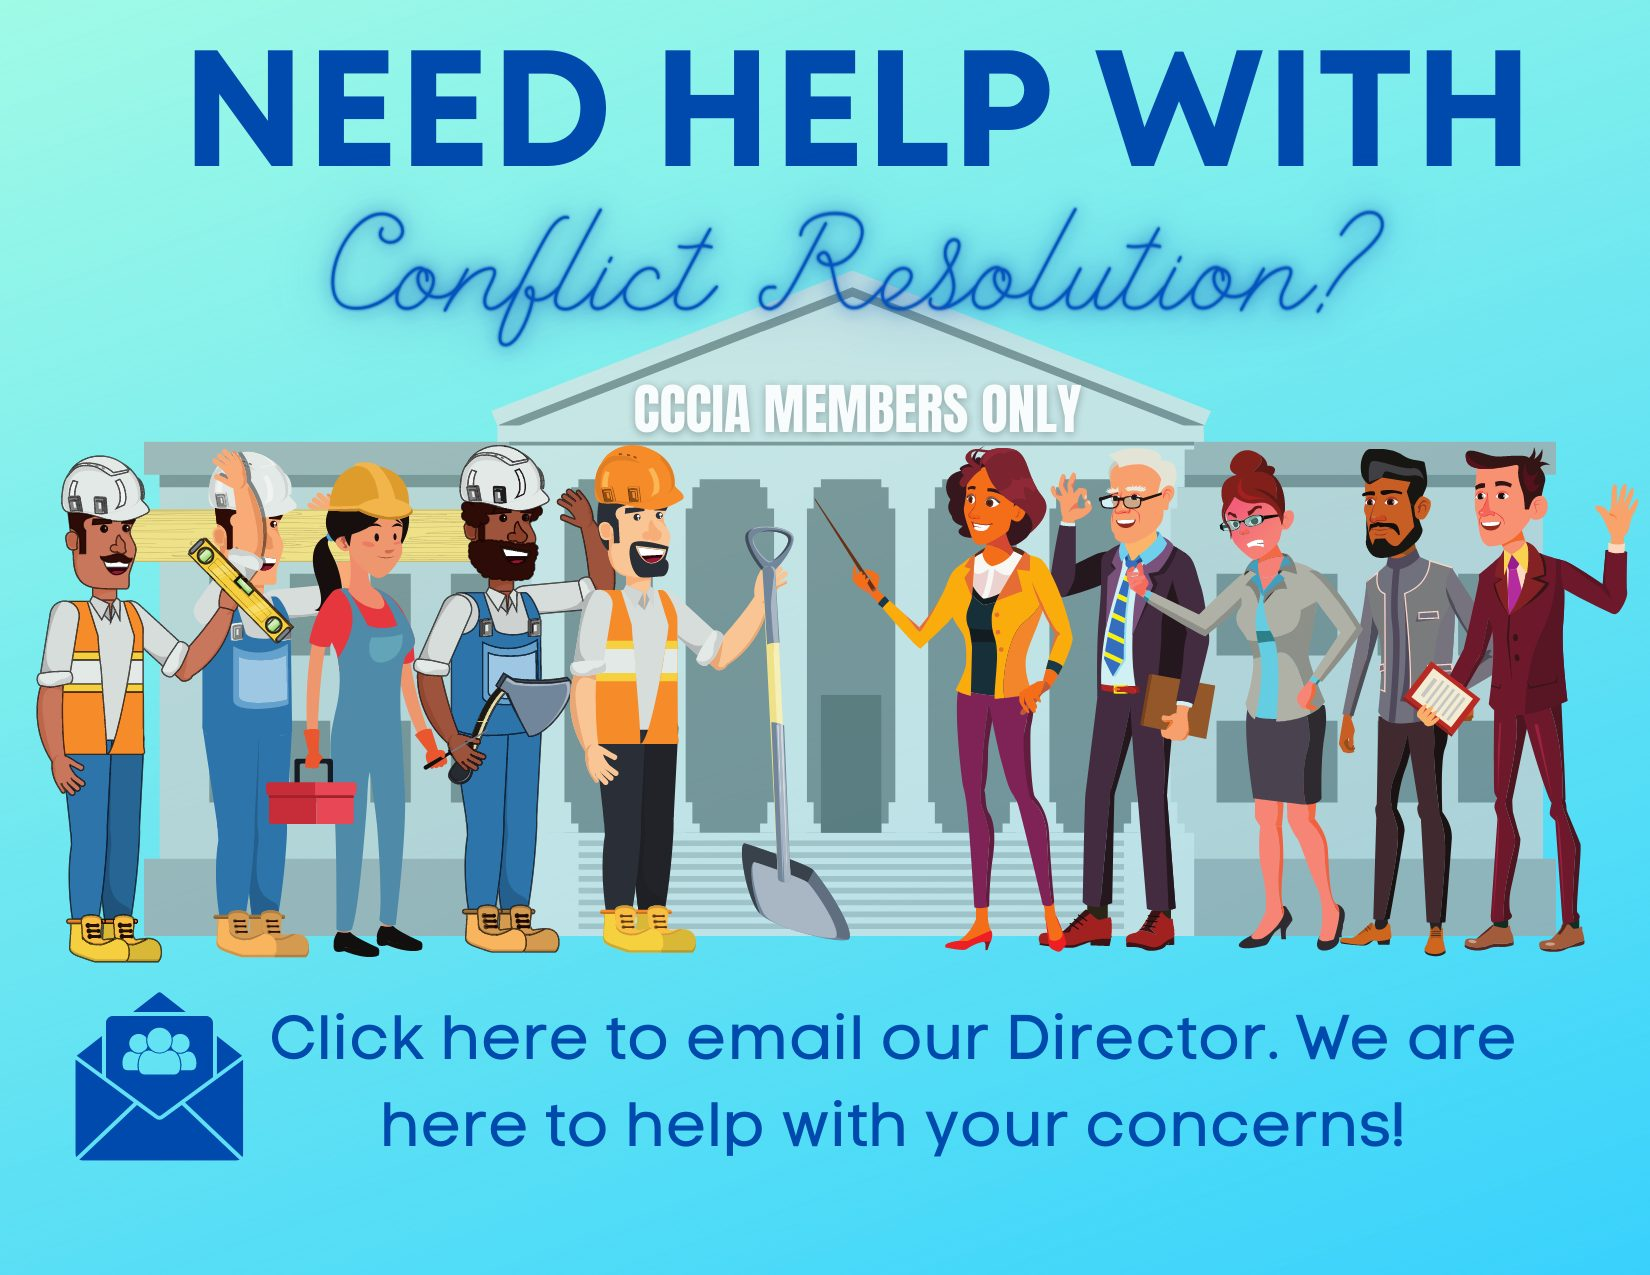 members only Conflict resolution graphic 5 (2)